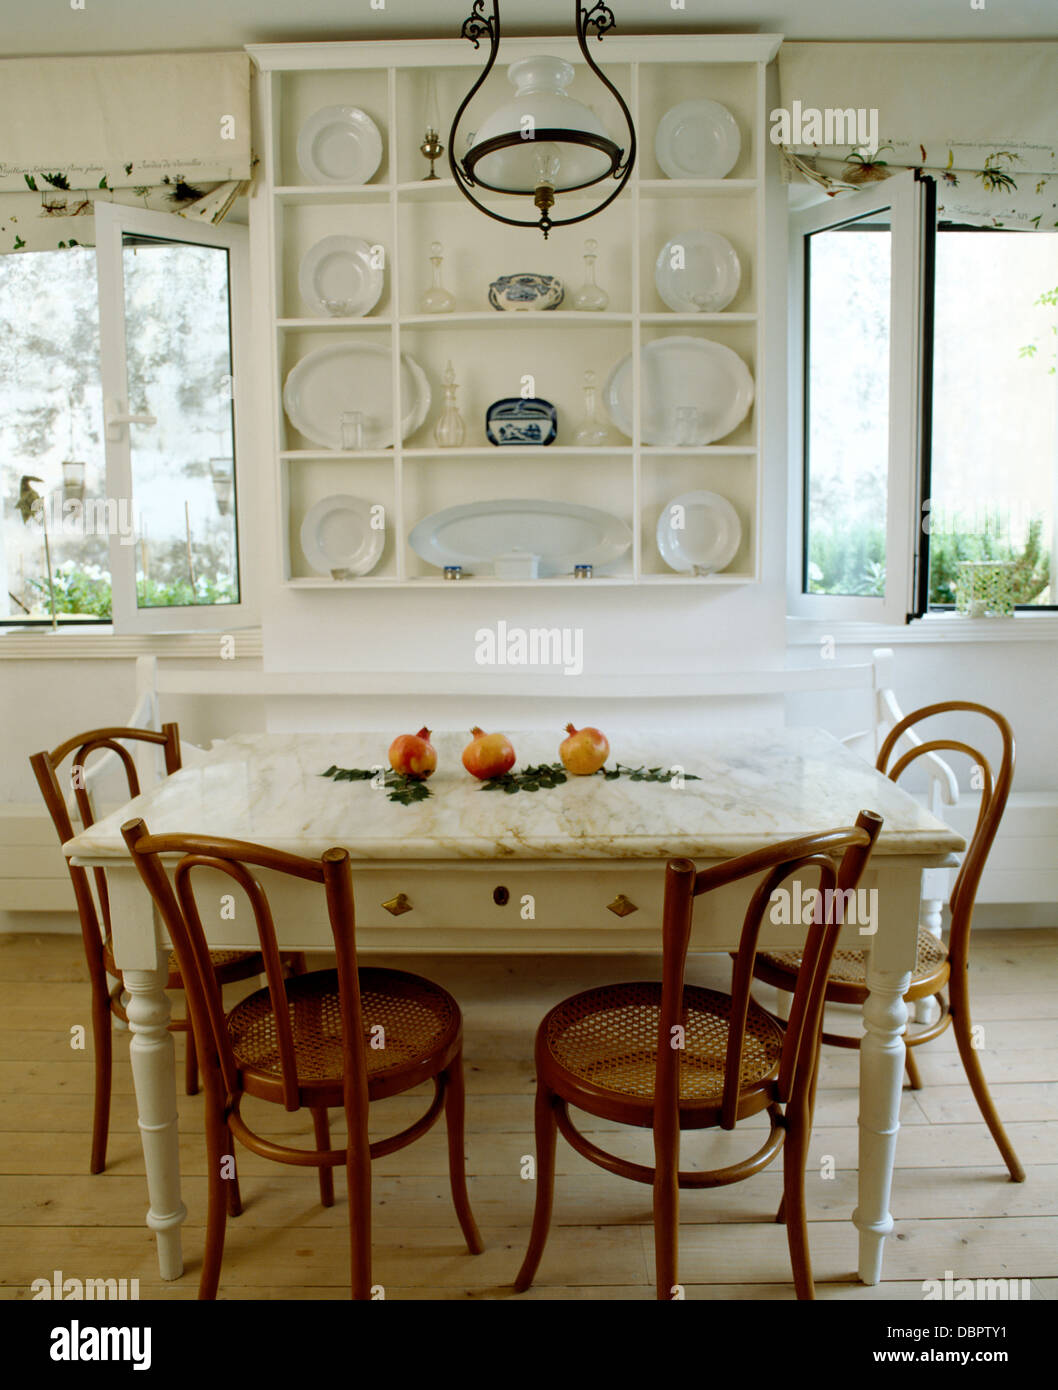 Simple White Shelves And Painted Table With Old Bentwood Chairs In White  Coastal Dining Room With Wooden Floor